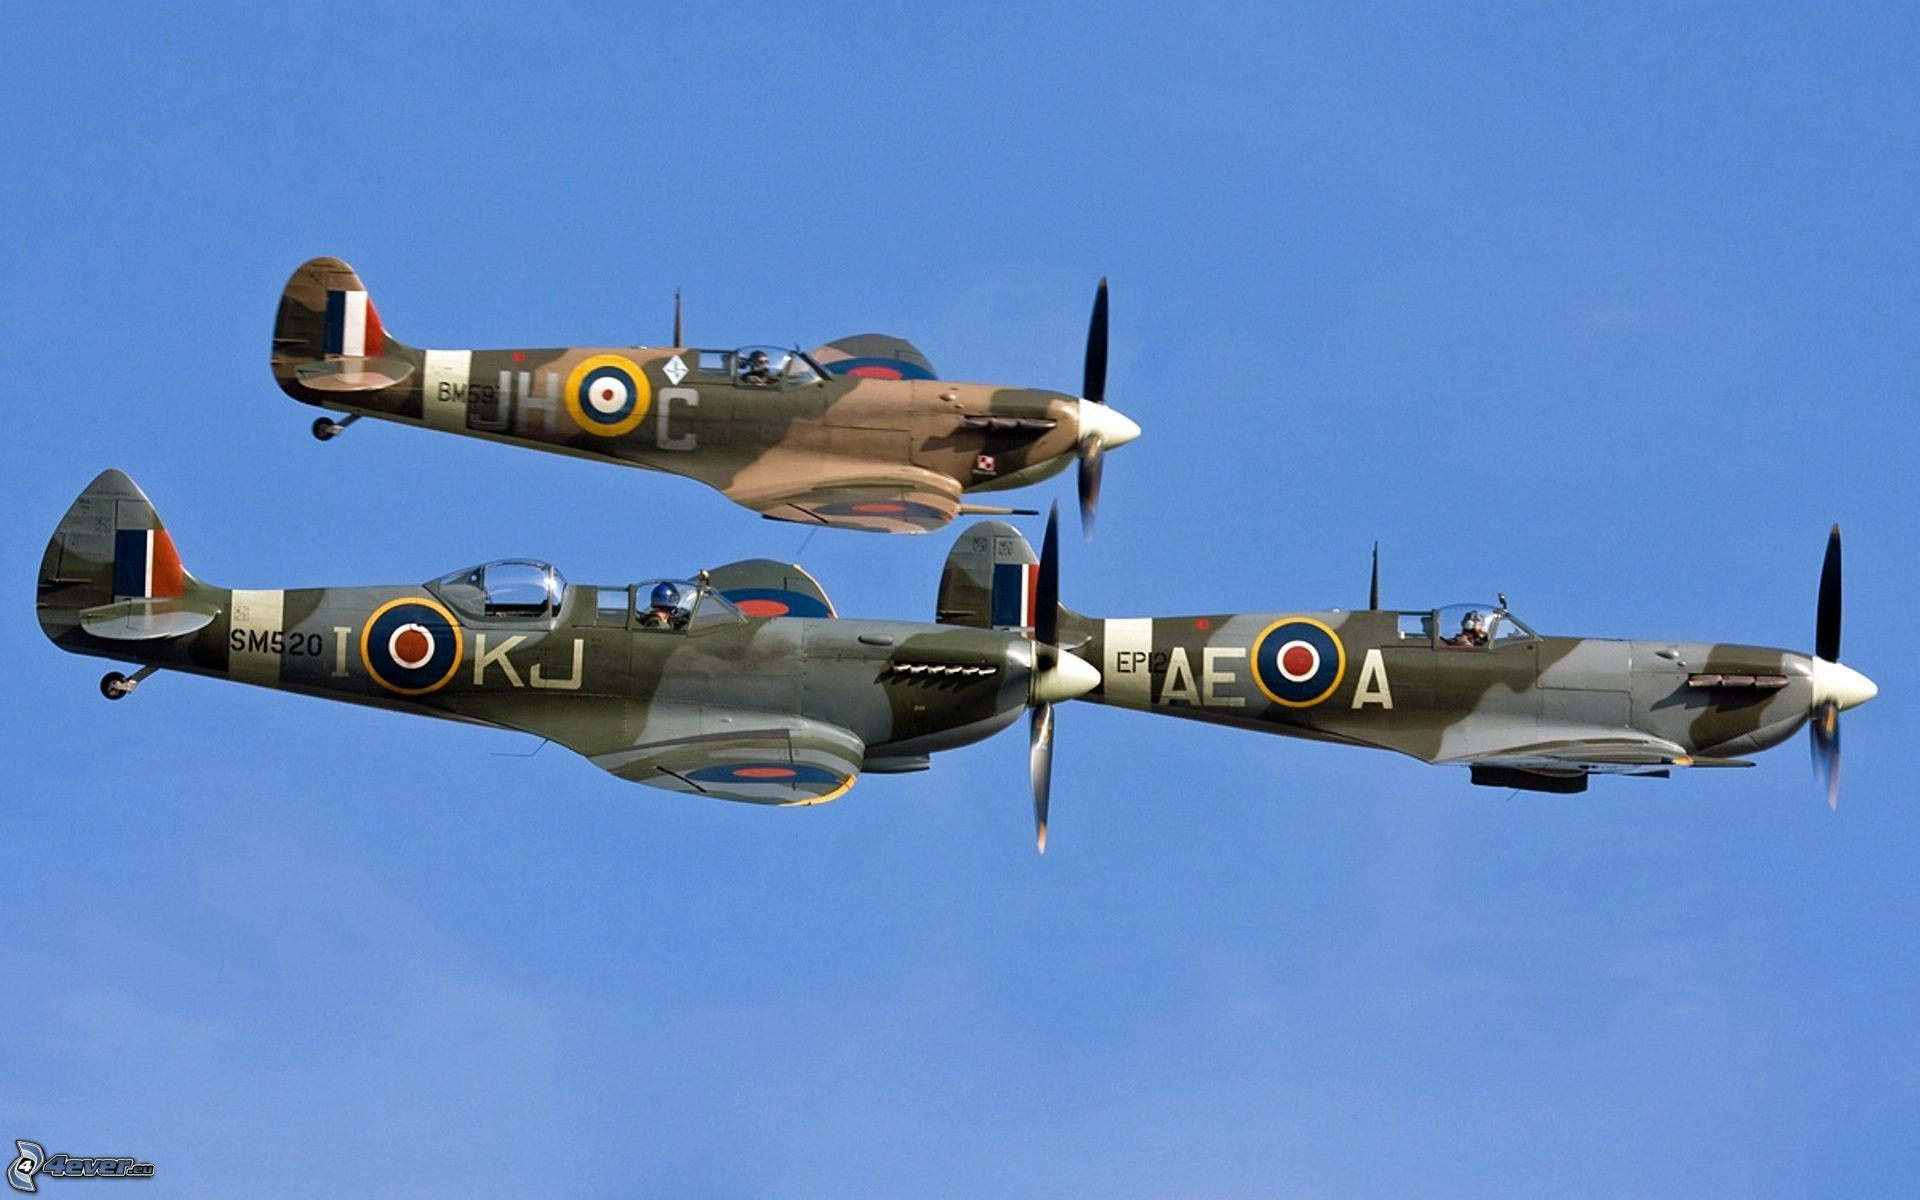 1920x1200 Supermarine Spitfire picture: [pictures 4ever eu] supermarin ...